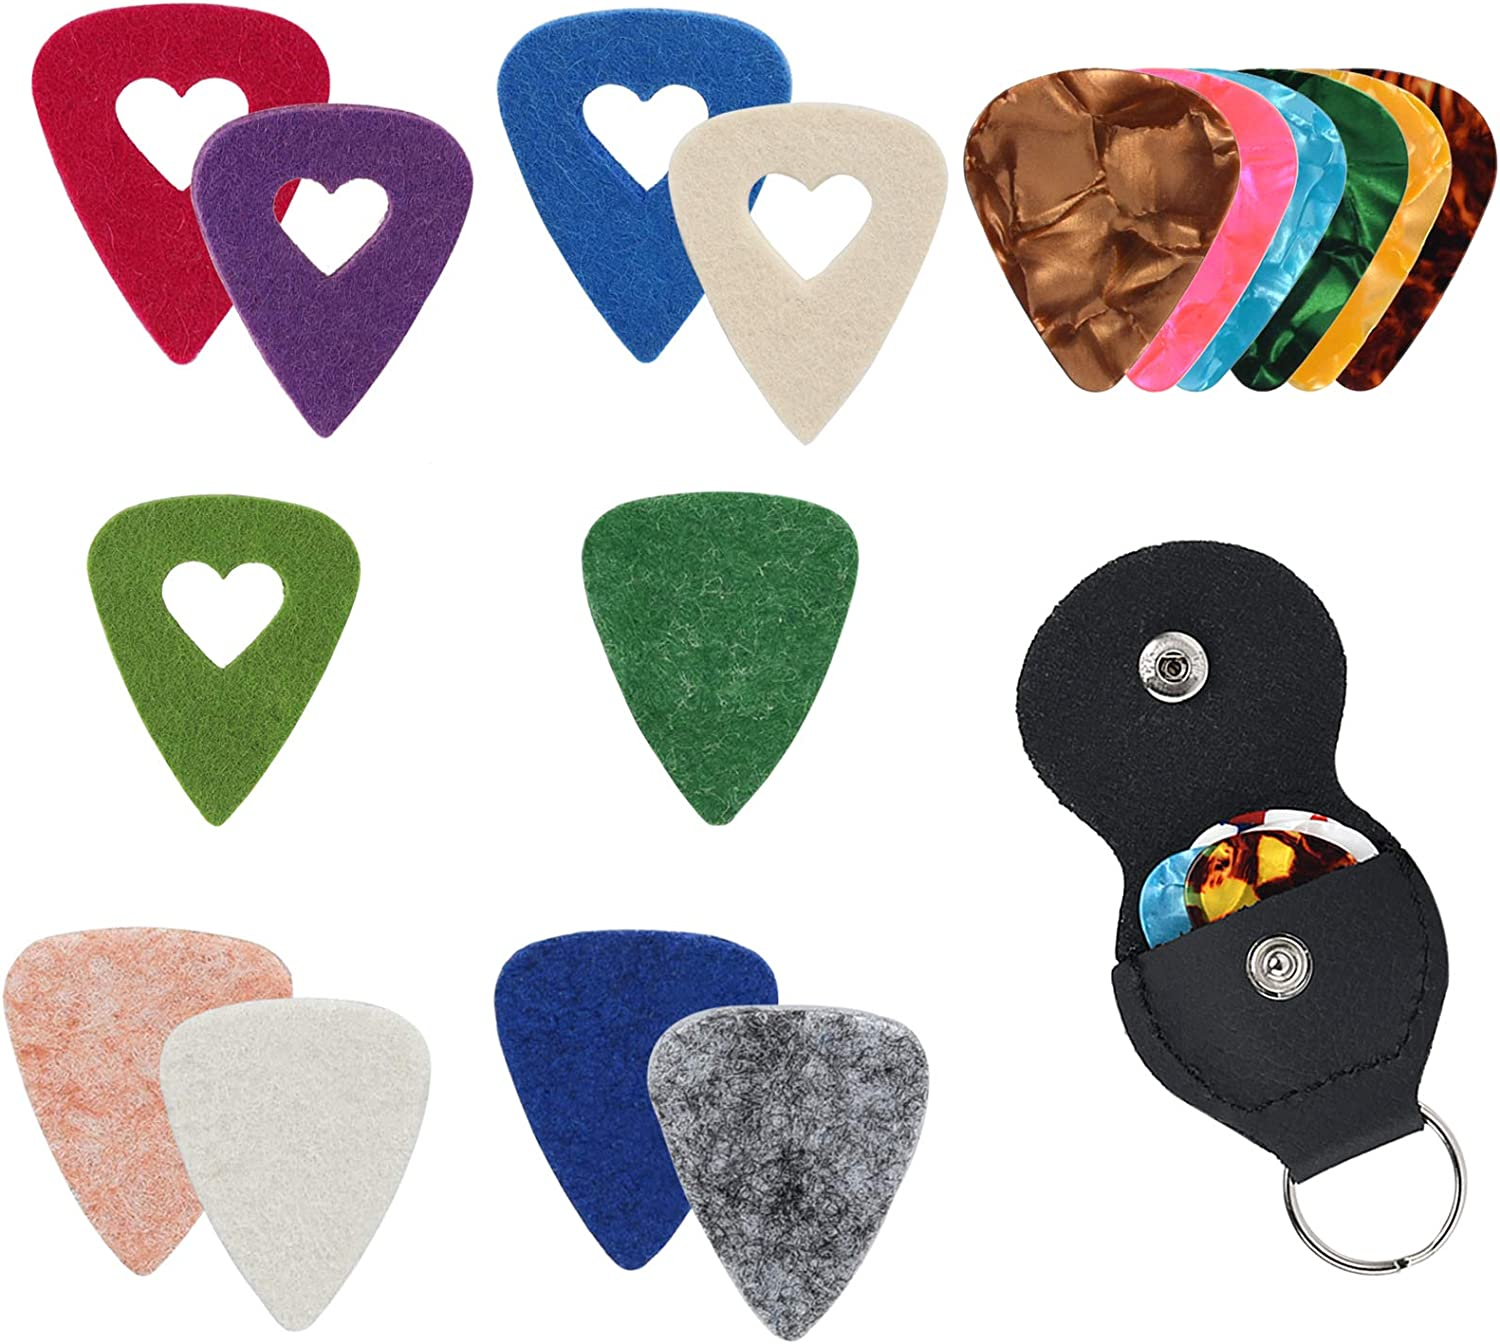 PlasMaller Hollow Guitar Inventory cleanup OFFicial selling sale Felt Hold Celluloid Picks